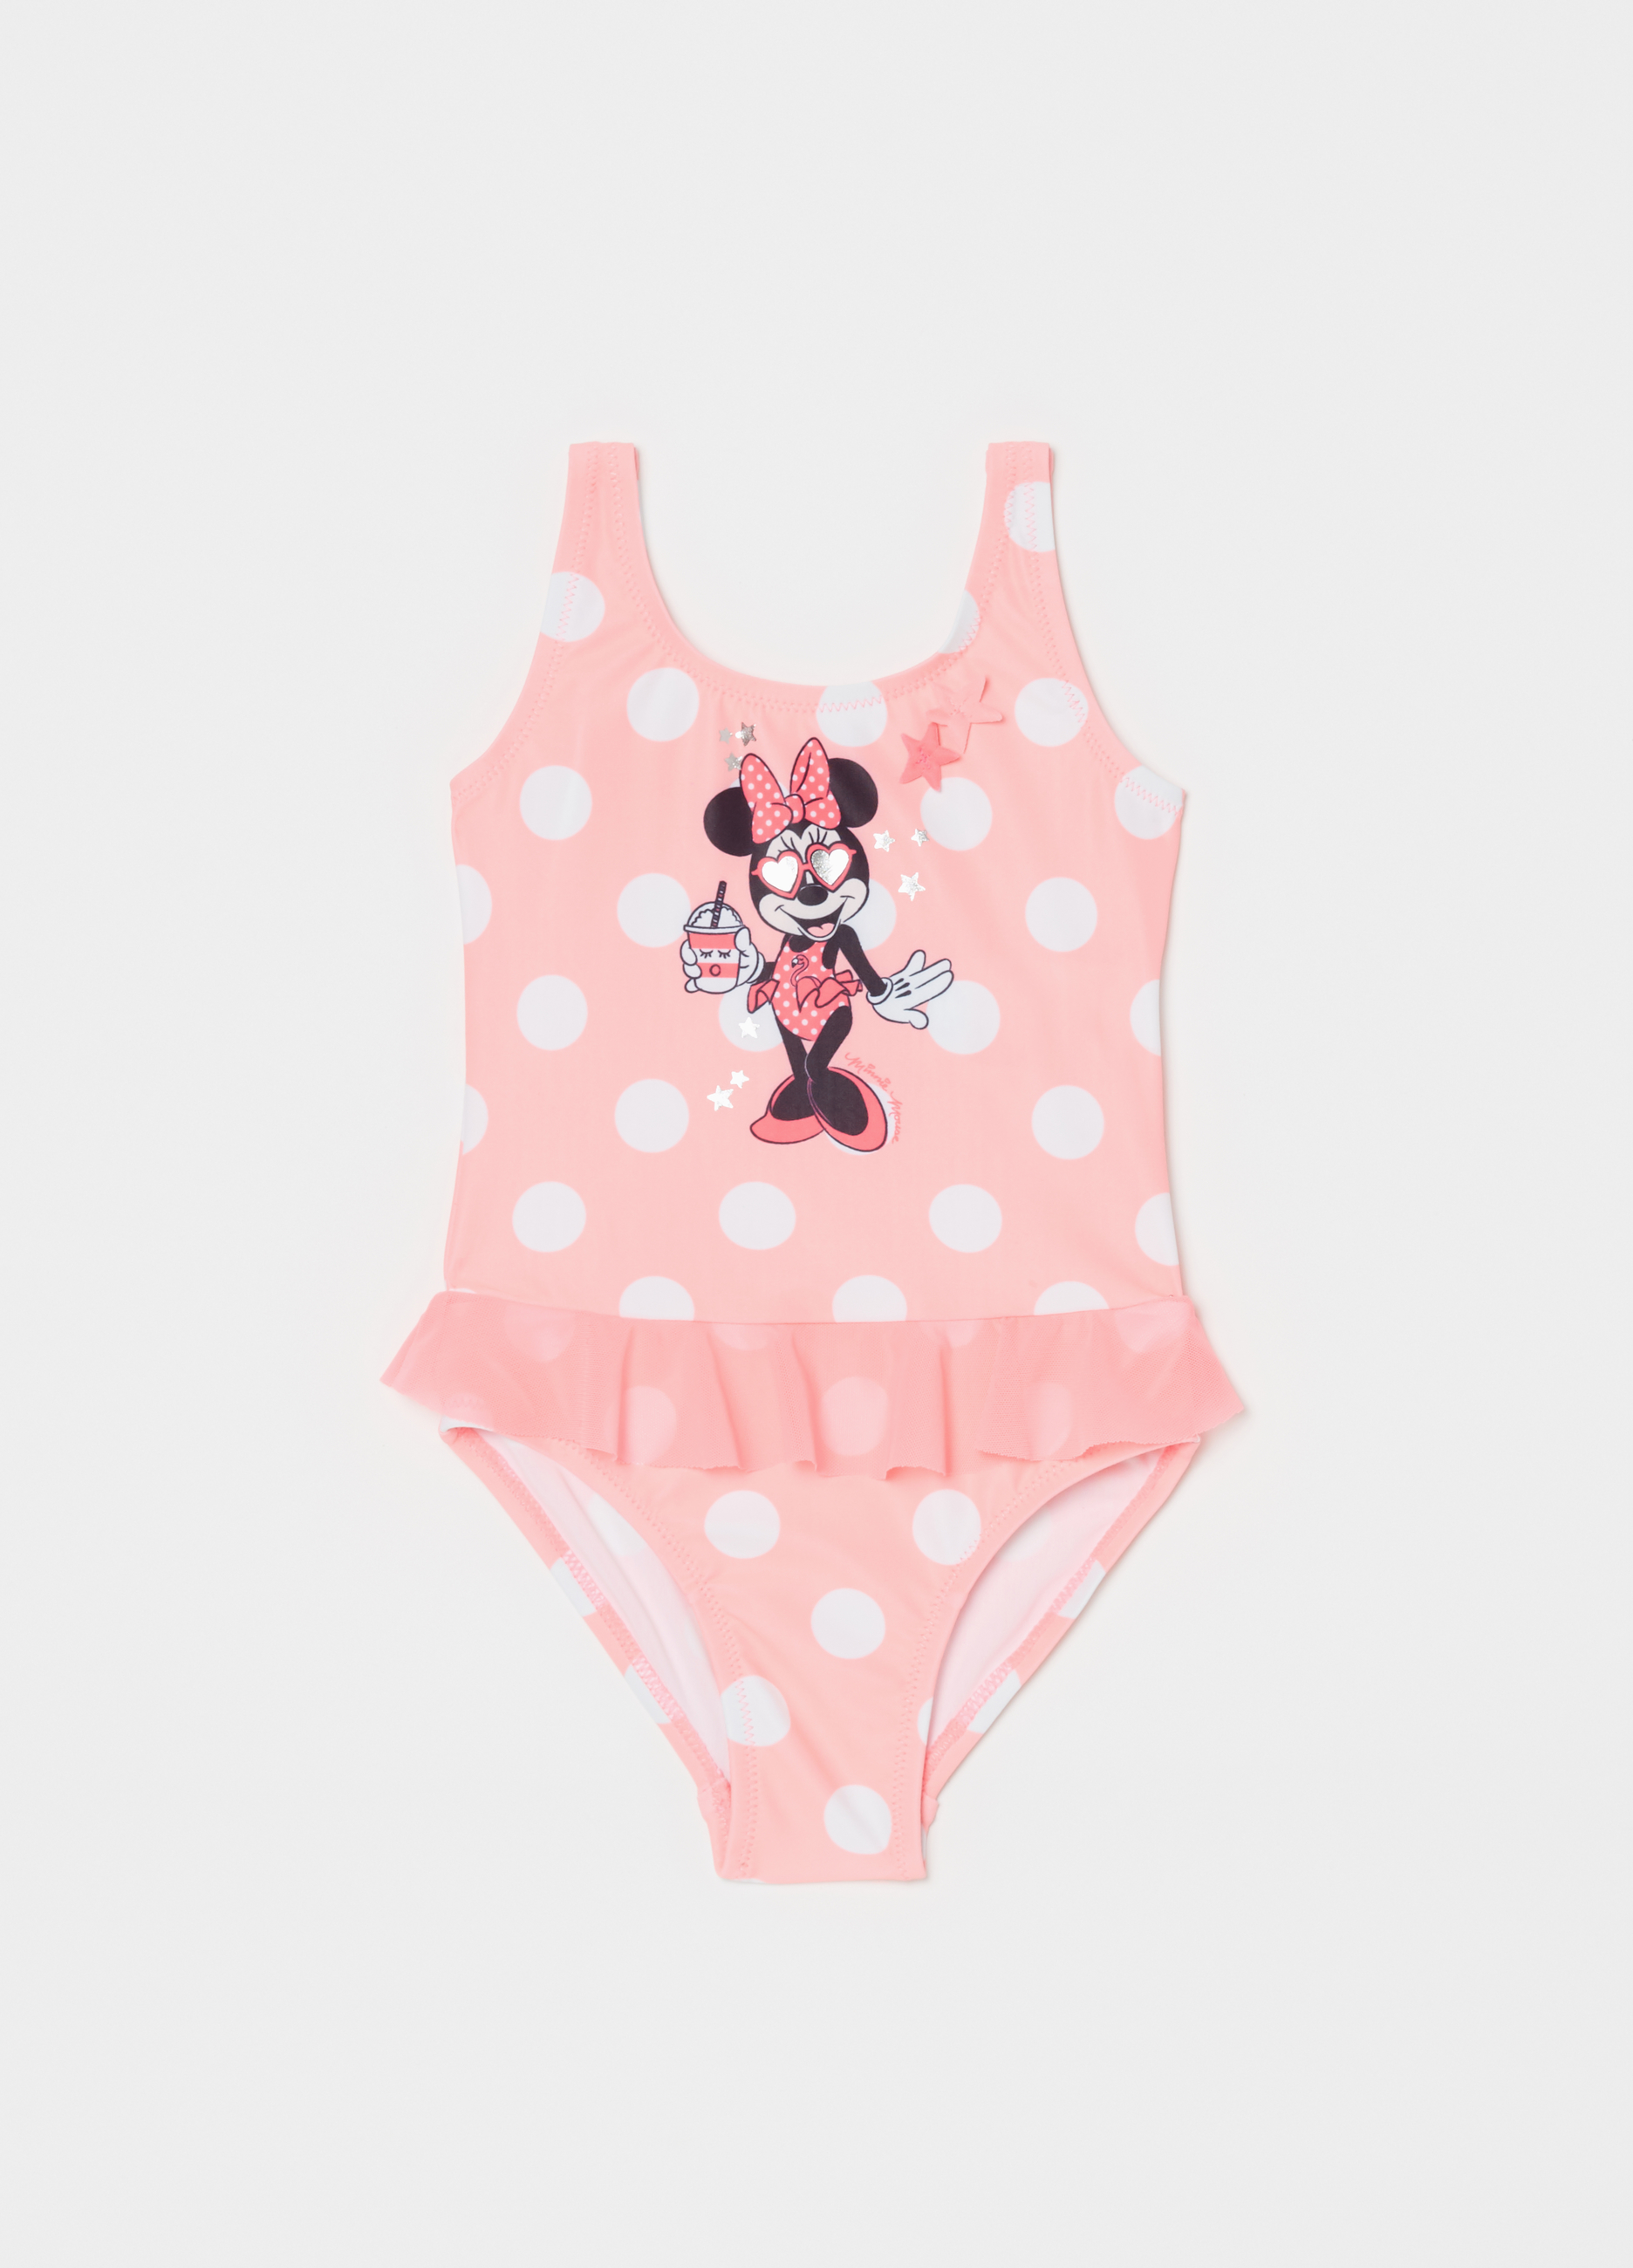 Babyone Baby Jogger Disney Baby One Piece Swimsuit With Polka Dot Print